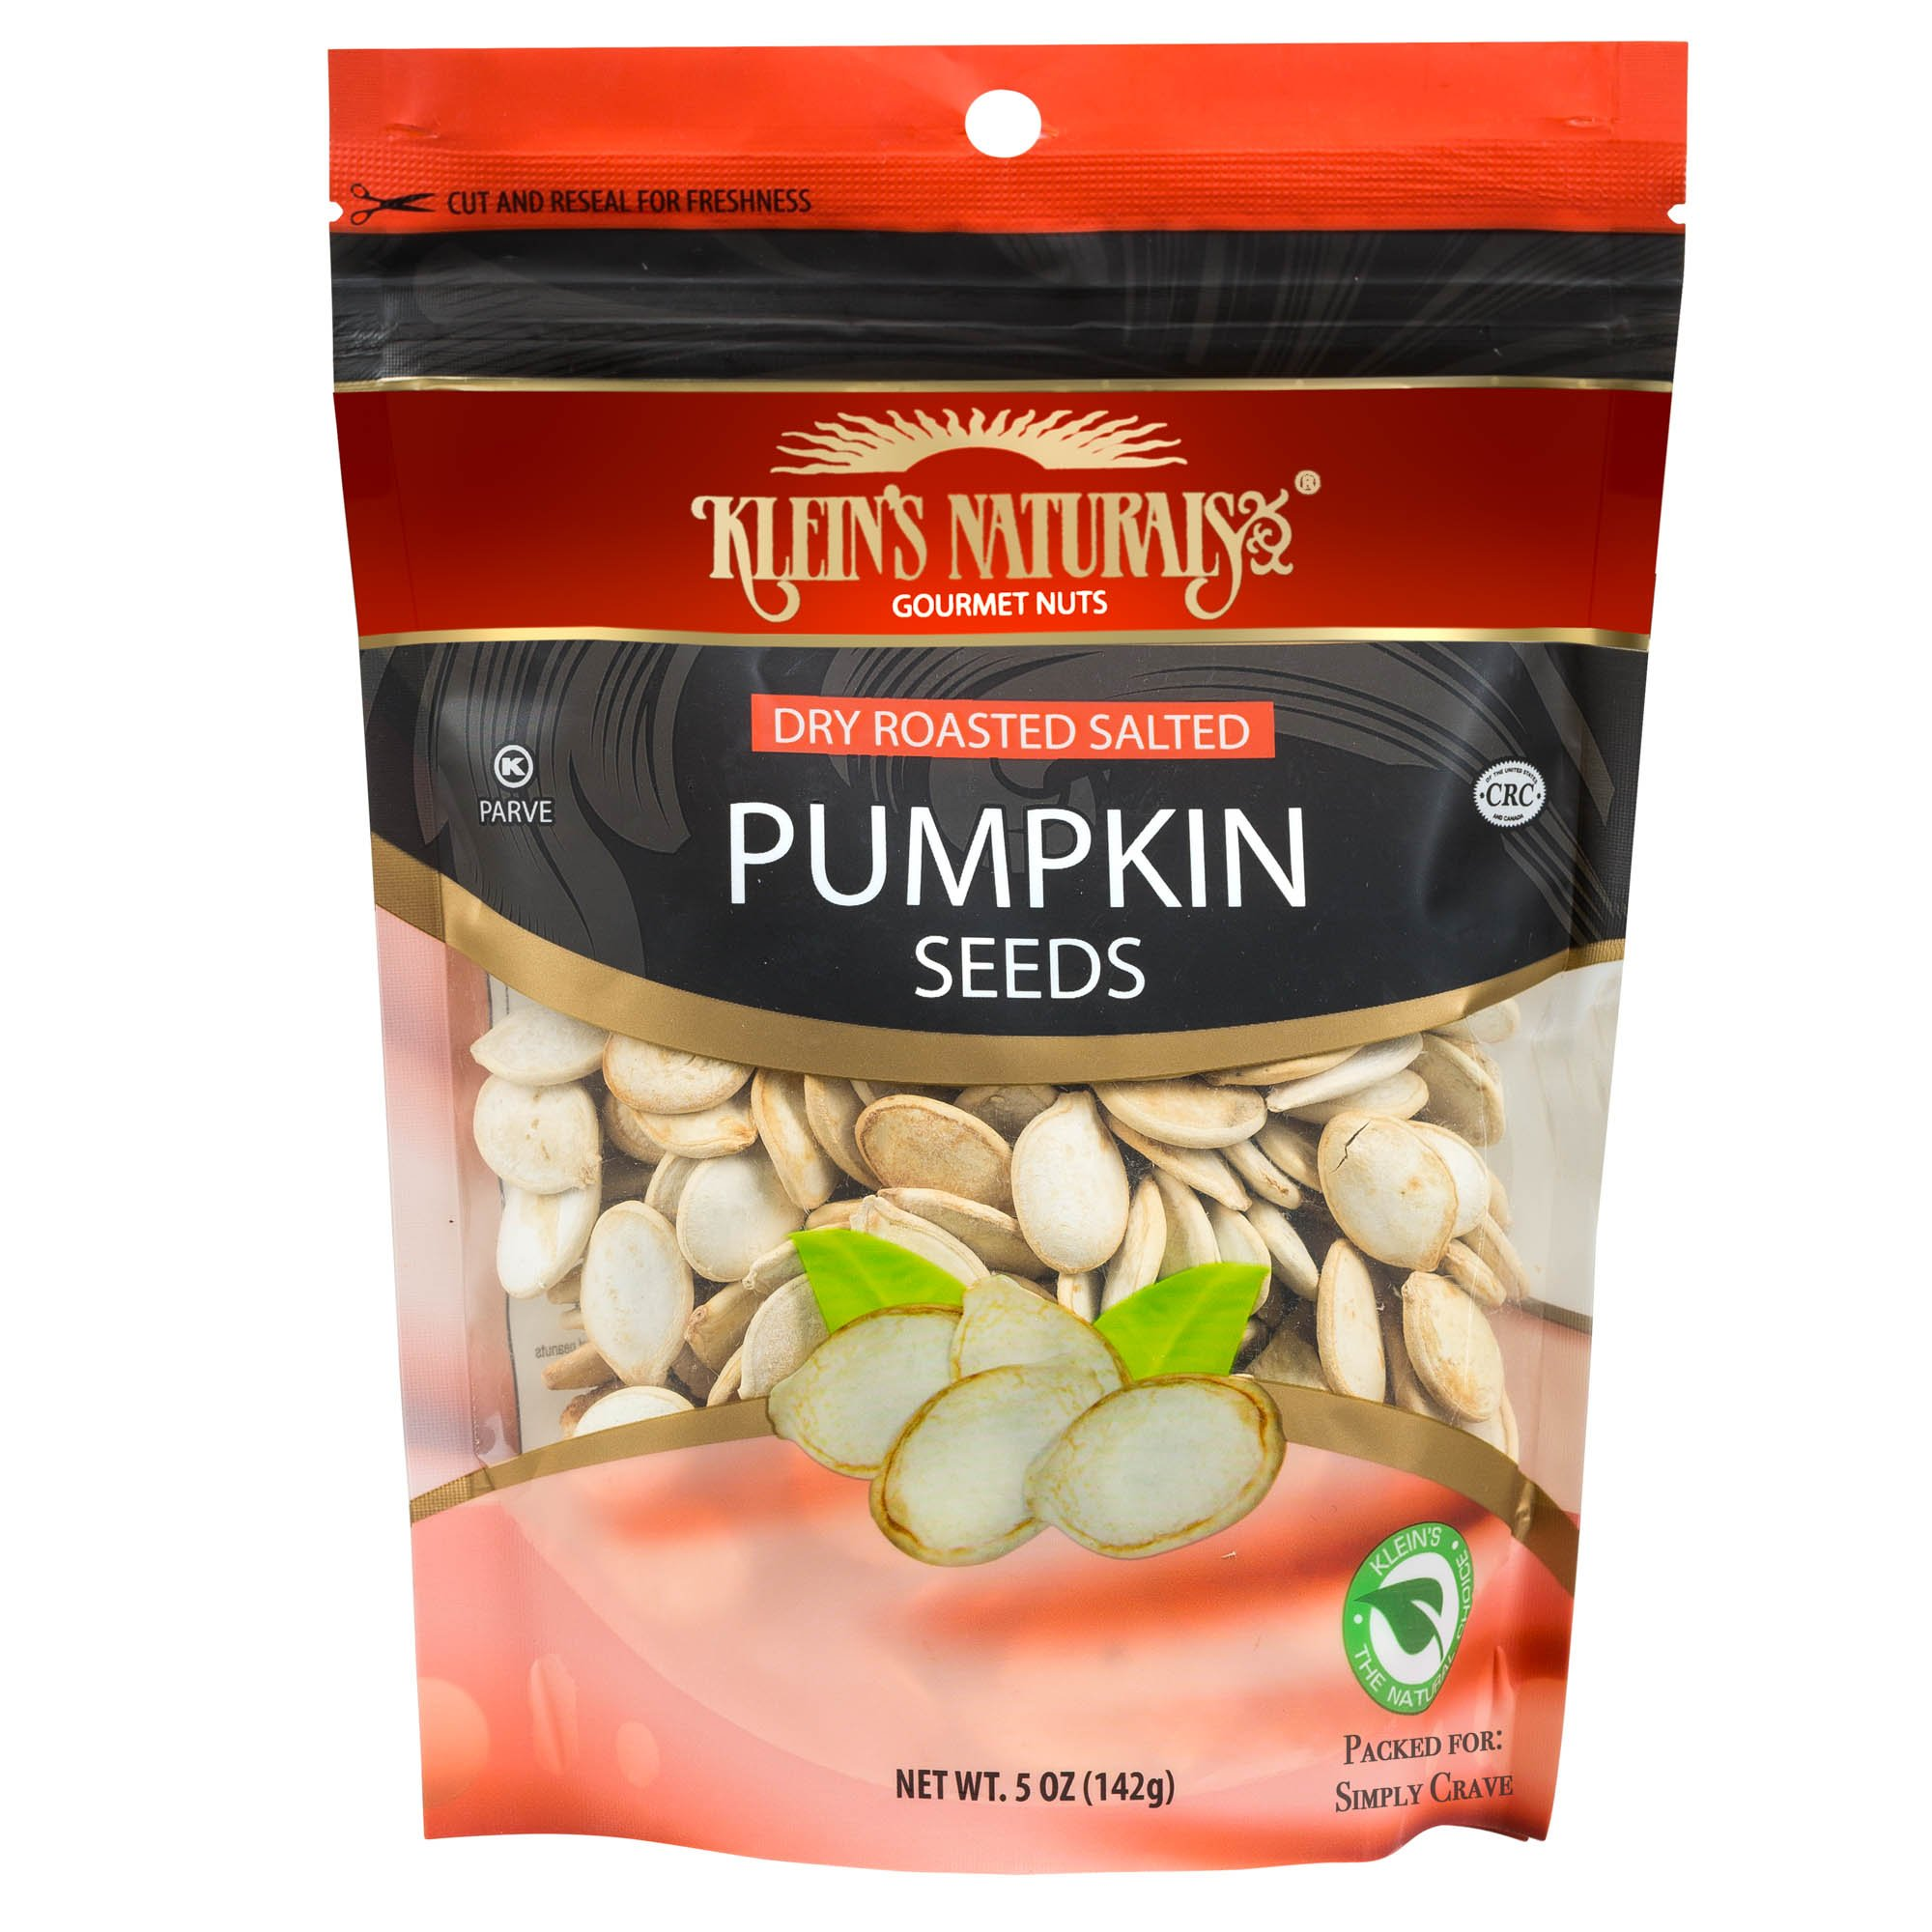 Kleins Naturals Dry Roasted Salted Pumpkin Seeds for Halloween Party, 5-Ounce (Pack of 6)